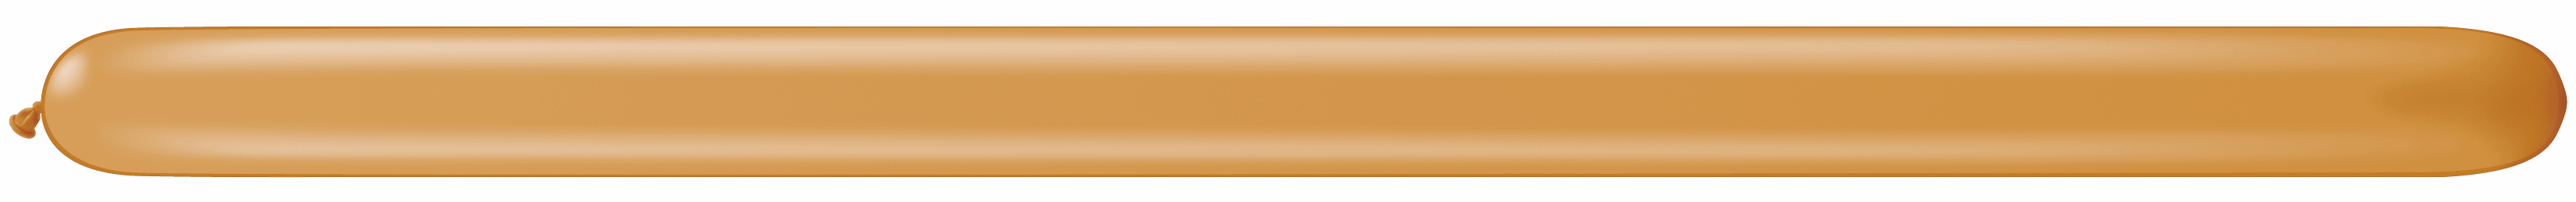 160Q Mocha Brown Specialty Entertainer Balloons (100 Count)